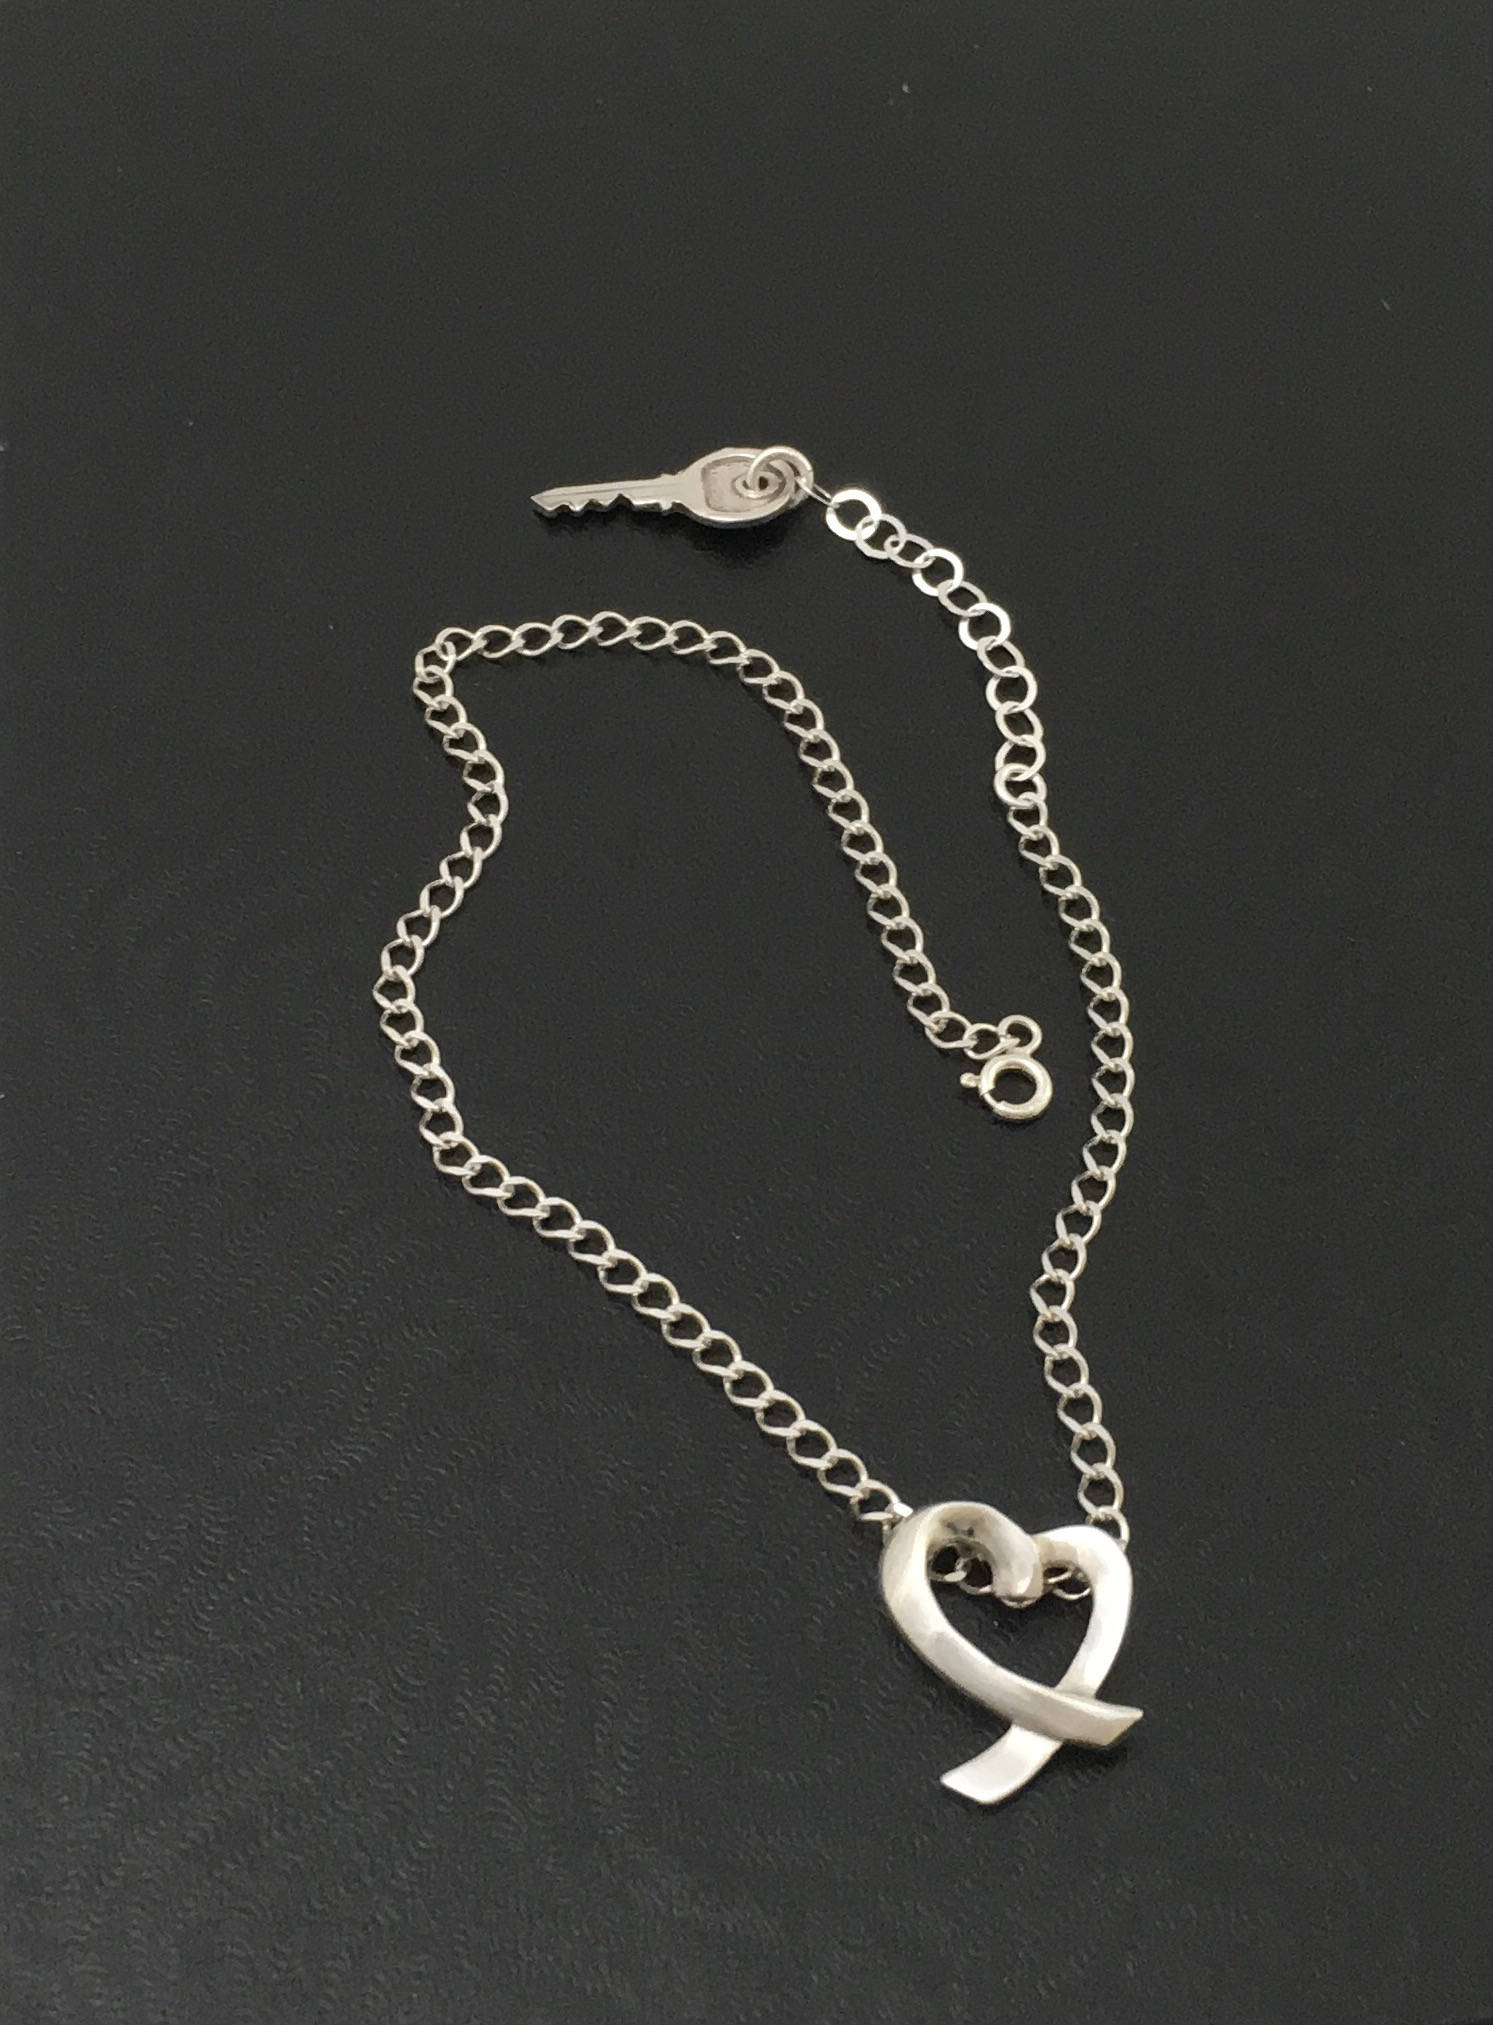 plated lock heart key hemp fullxfull with glass il p and anklet metal beads macrame charms black silver